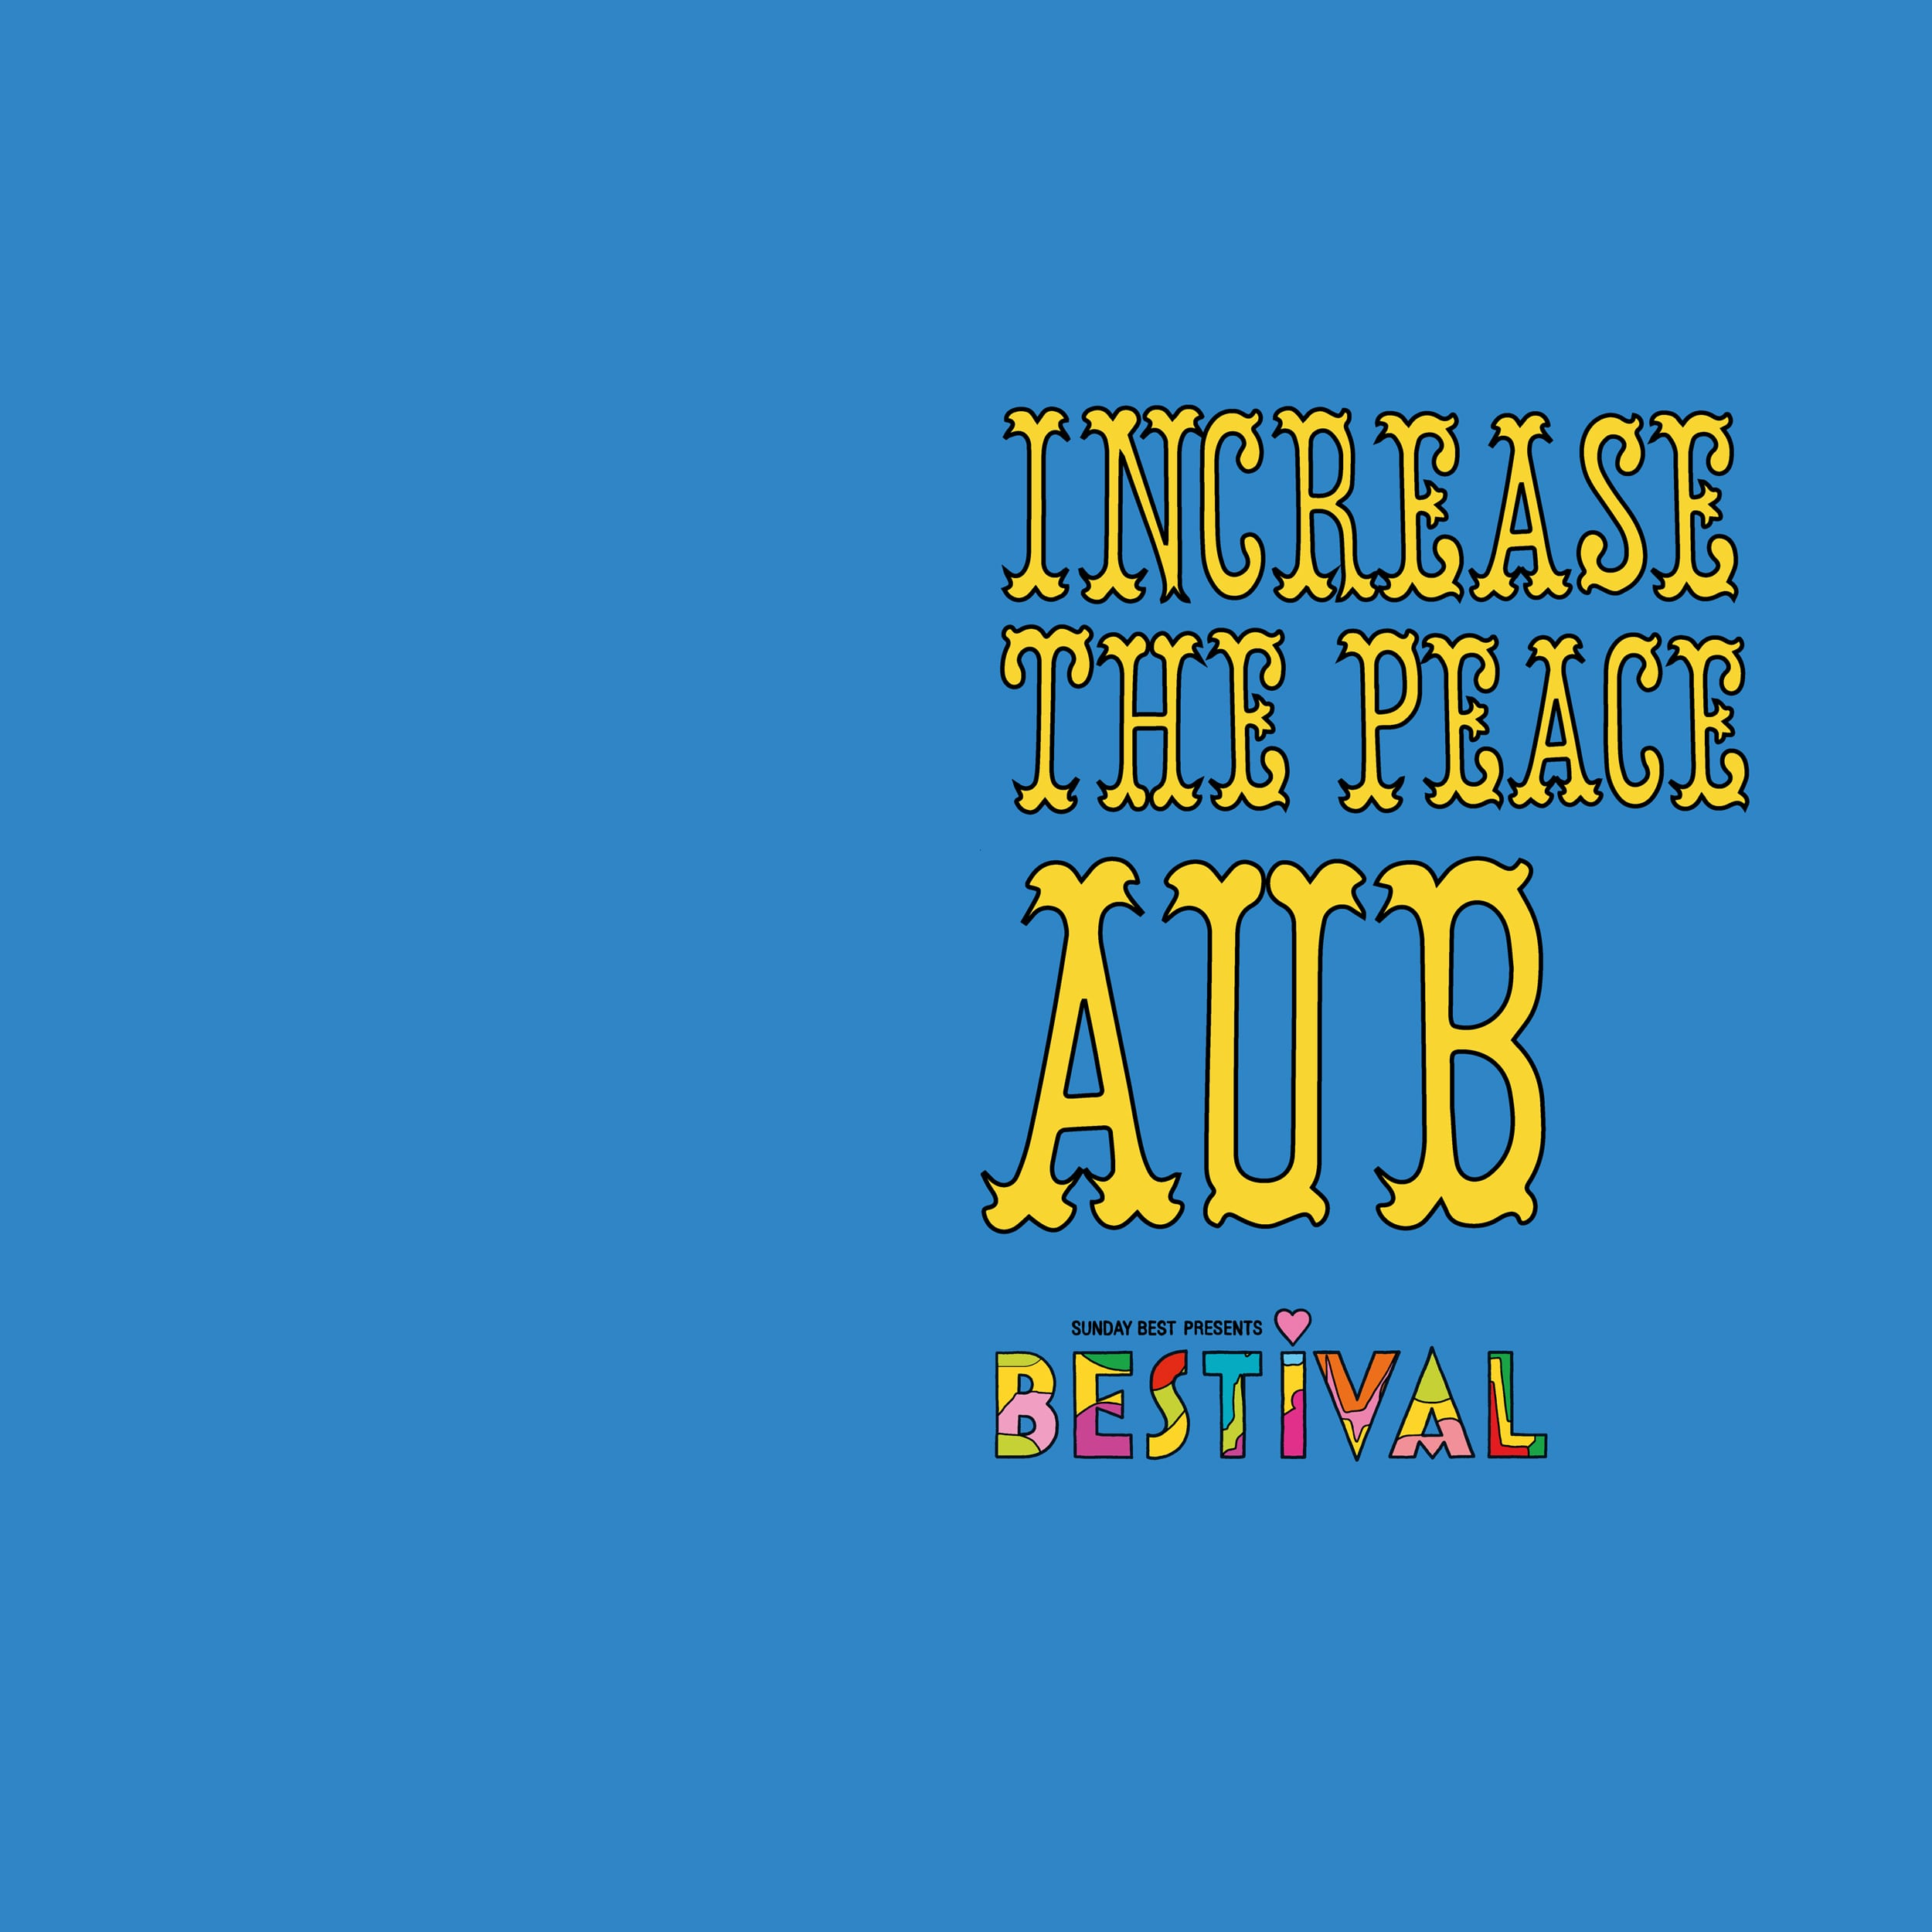 AUB welcomes Bestival to campus